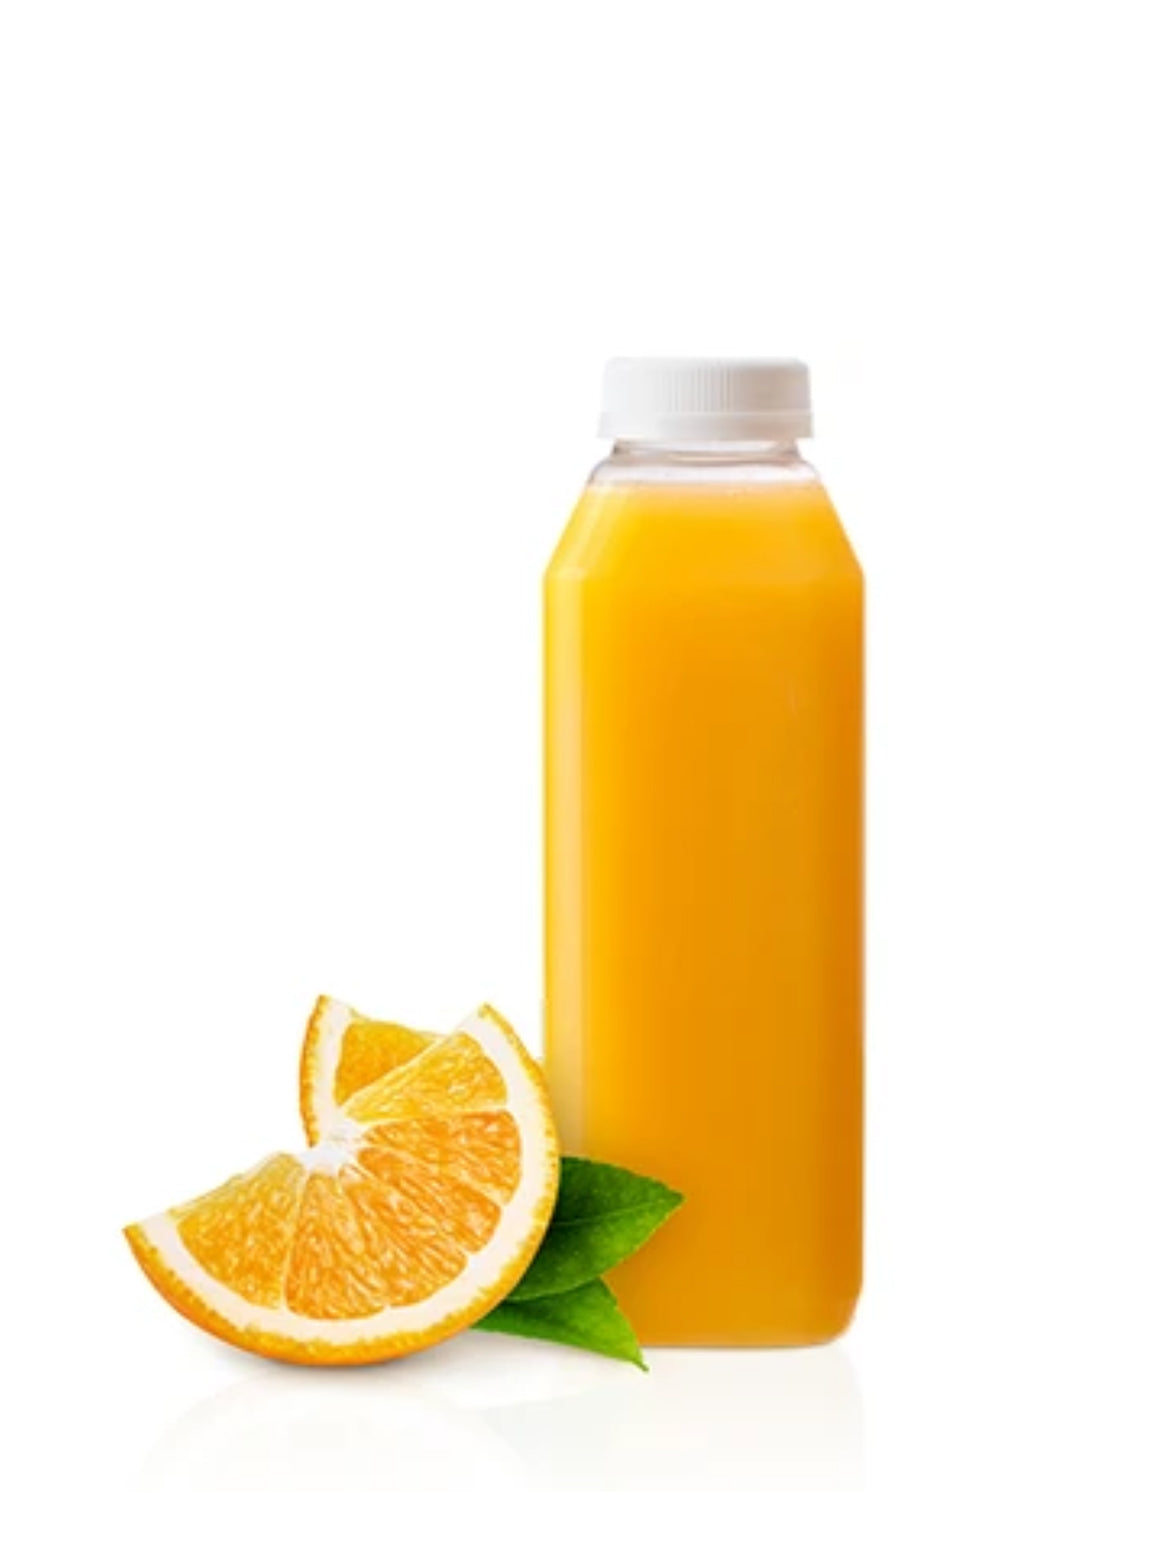 16oz Pt fresh OJ - each